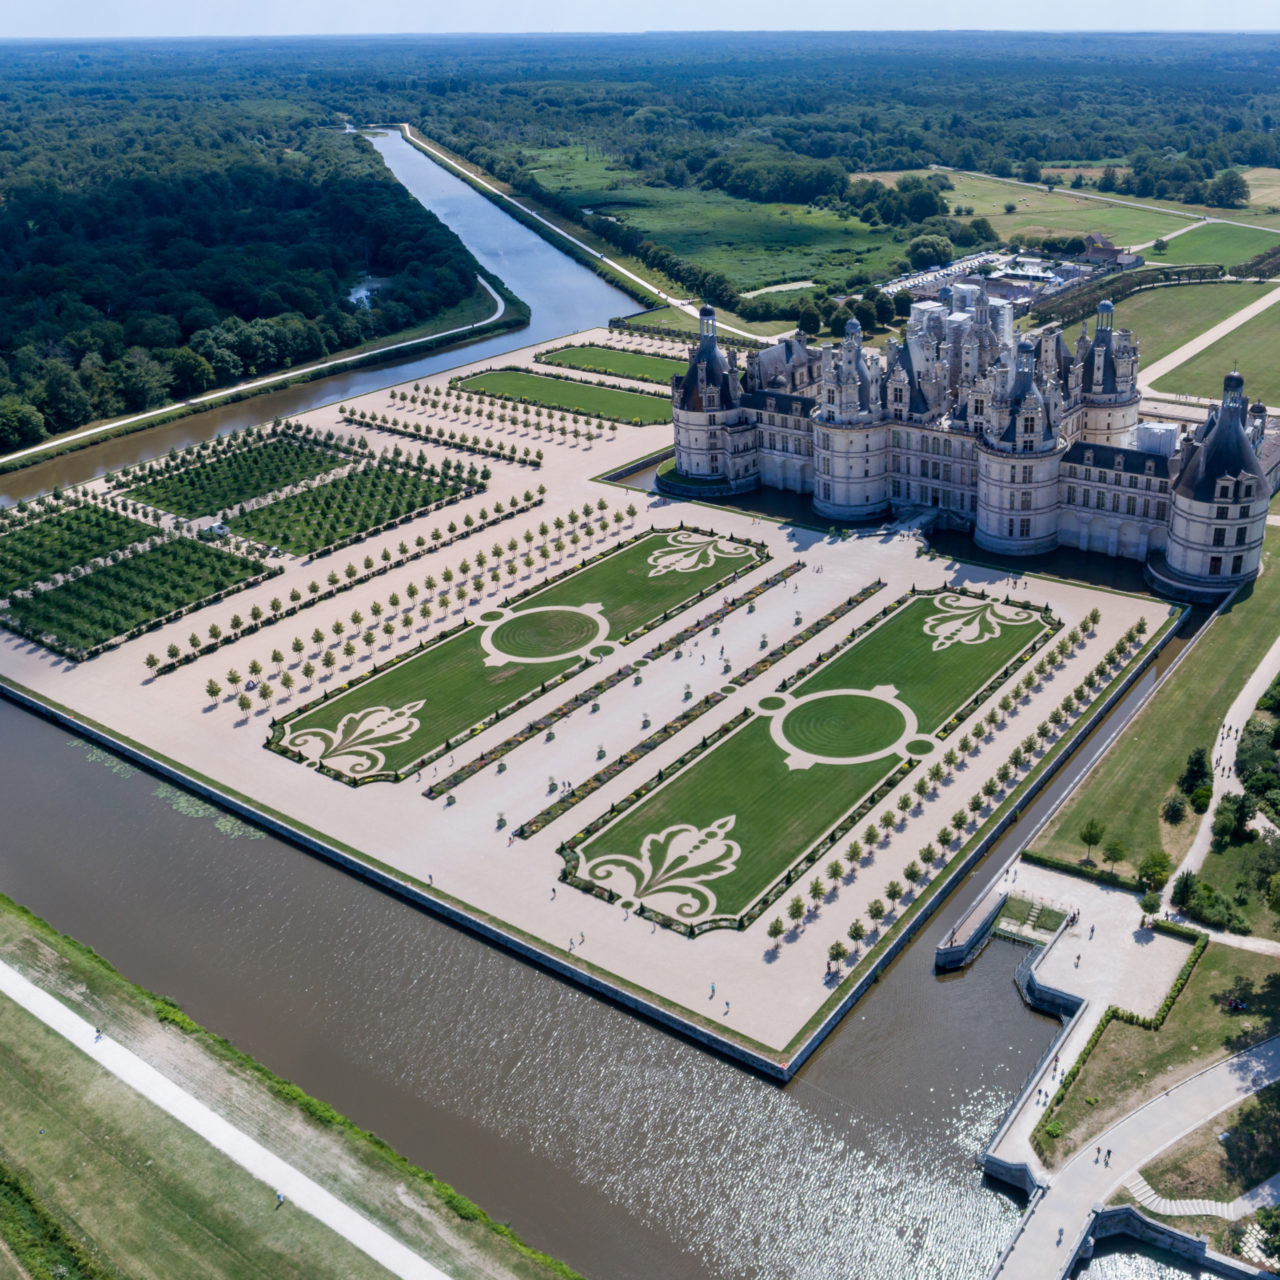 https://www.dronemagister.com/wp-content/uploads/2018/11/Chambord-1280x1280.jpg